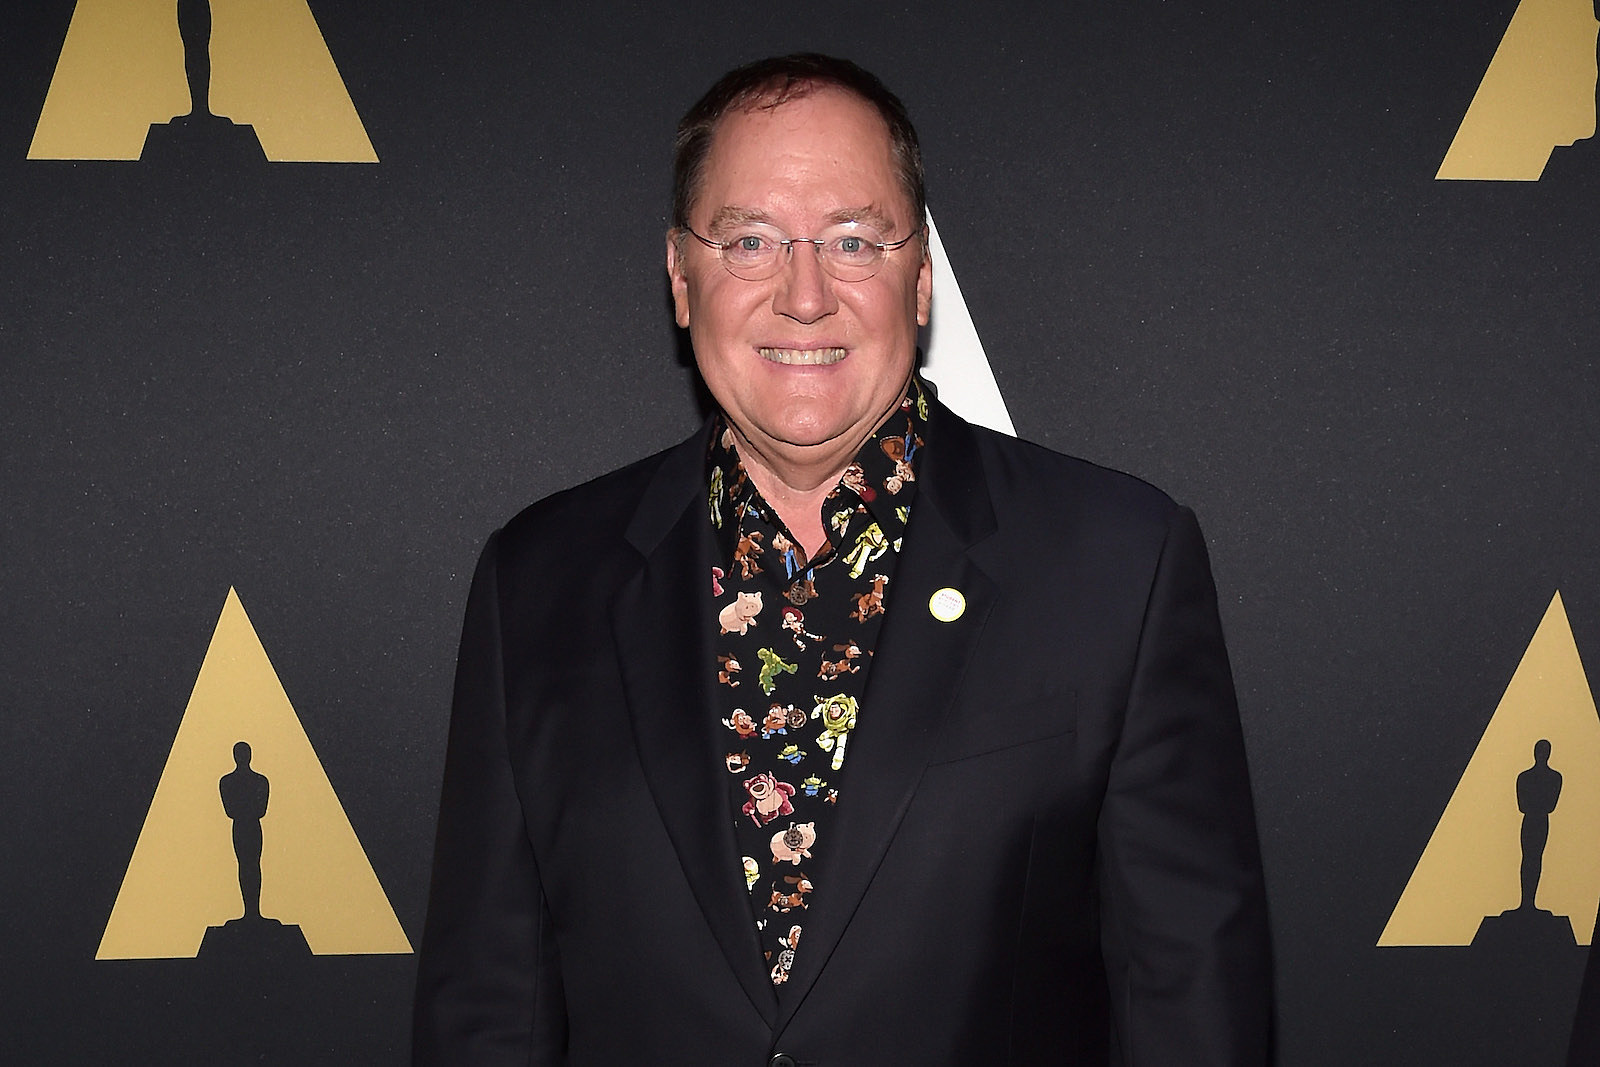 """The Academy Of Motion Picture Arts And Sciences Celebrates The 20th Anniversary Of """"Toy Story"""" With John Lasseter And Ed Catmull"""